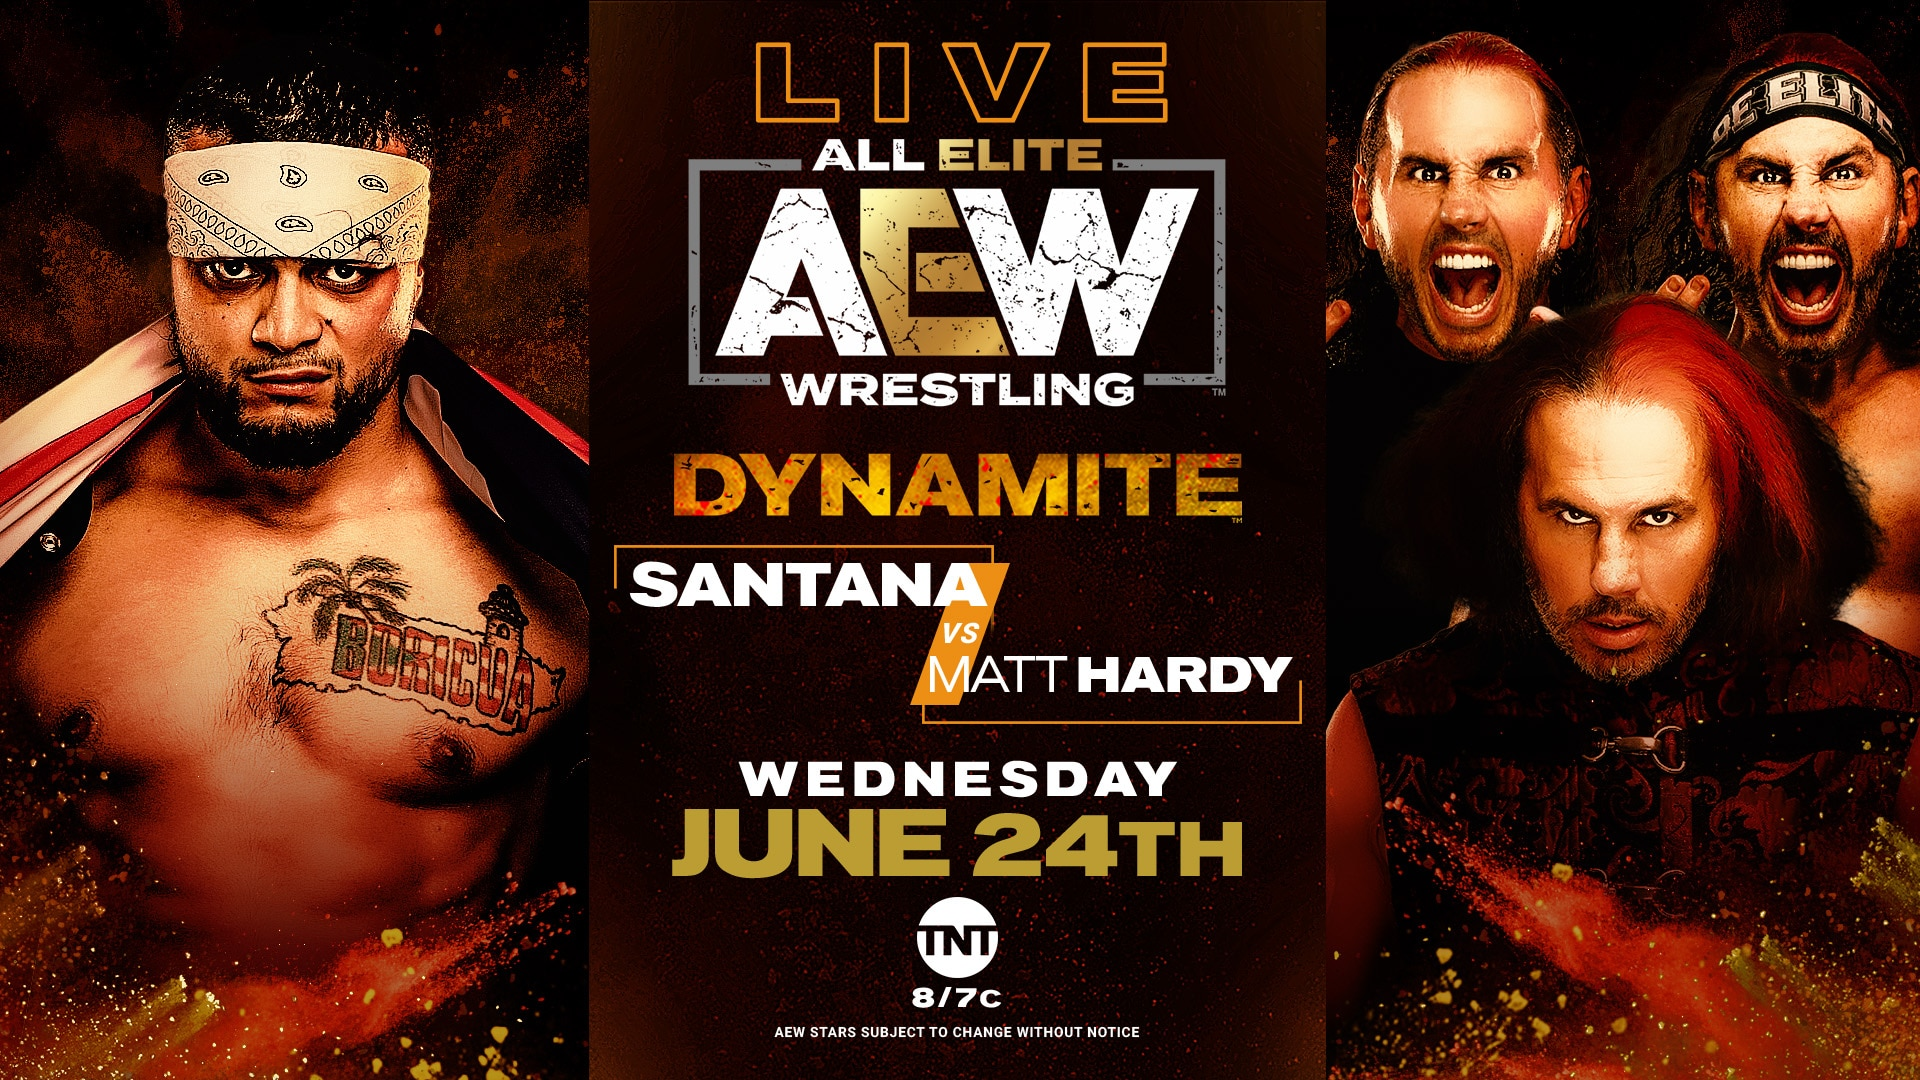 Santana vs Matt Hardy